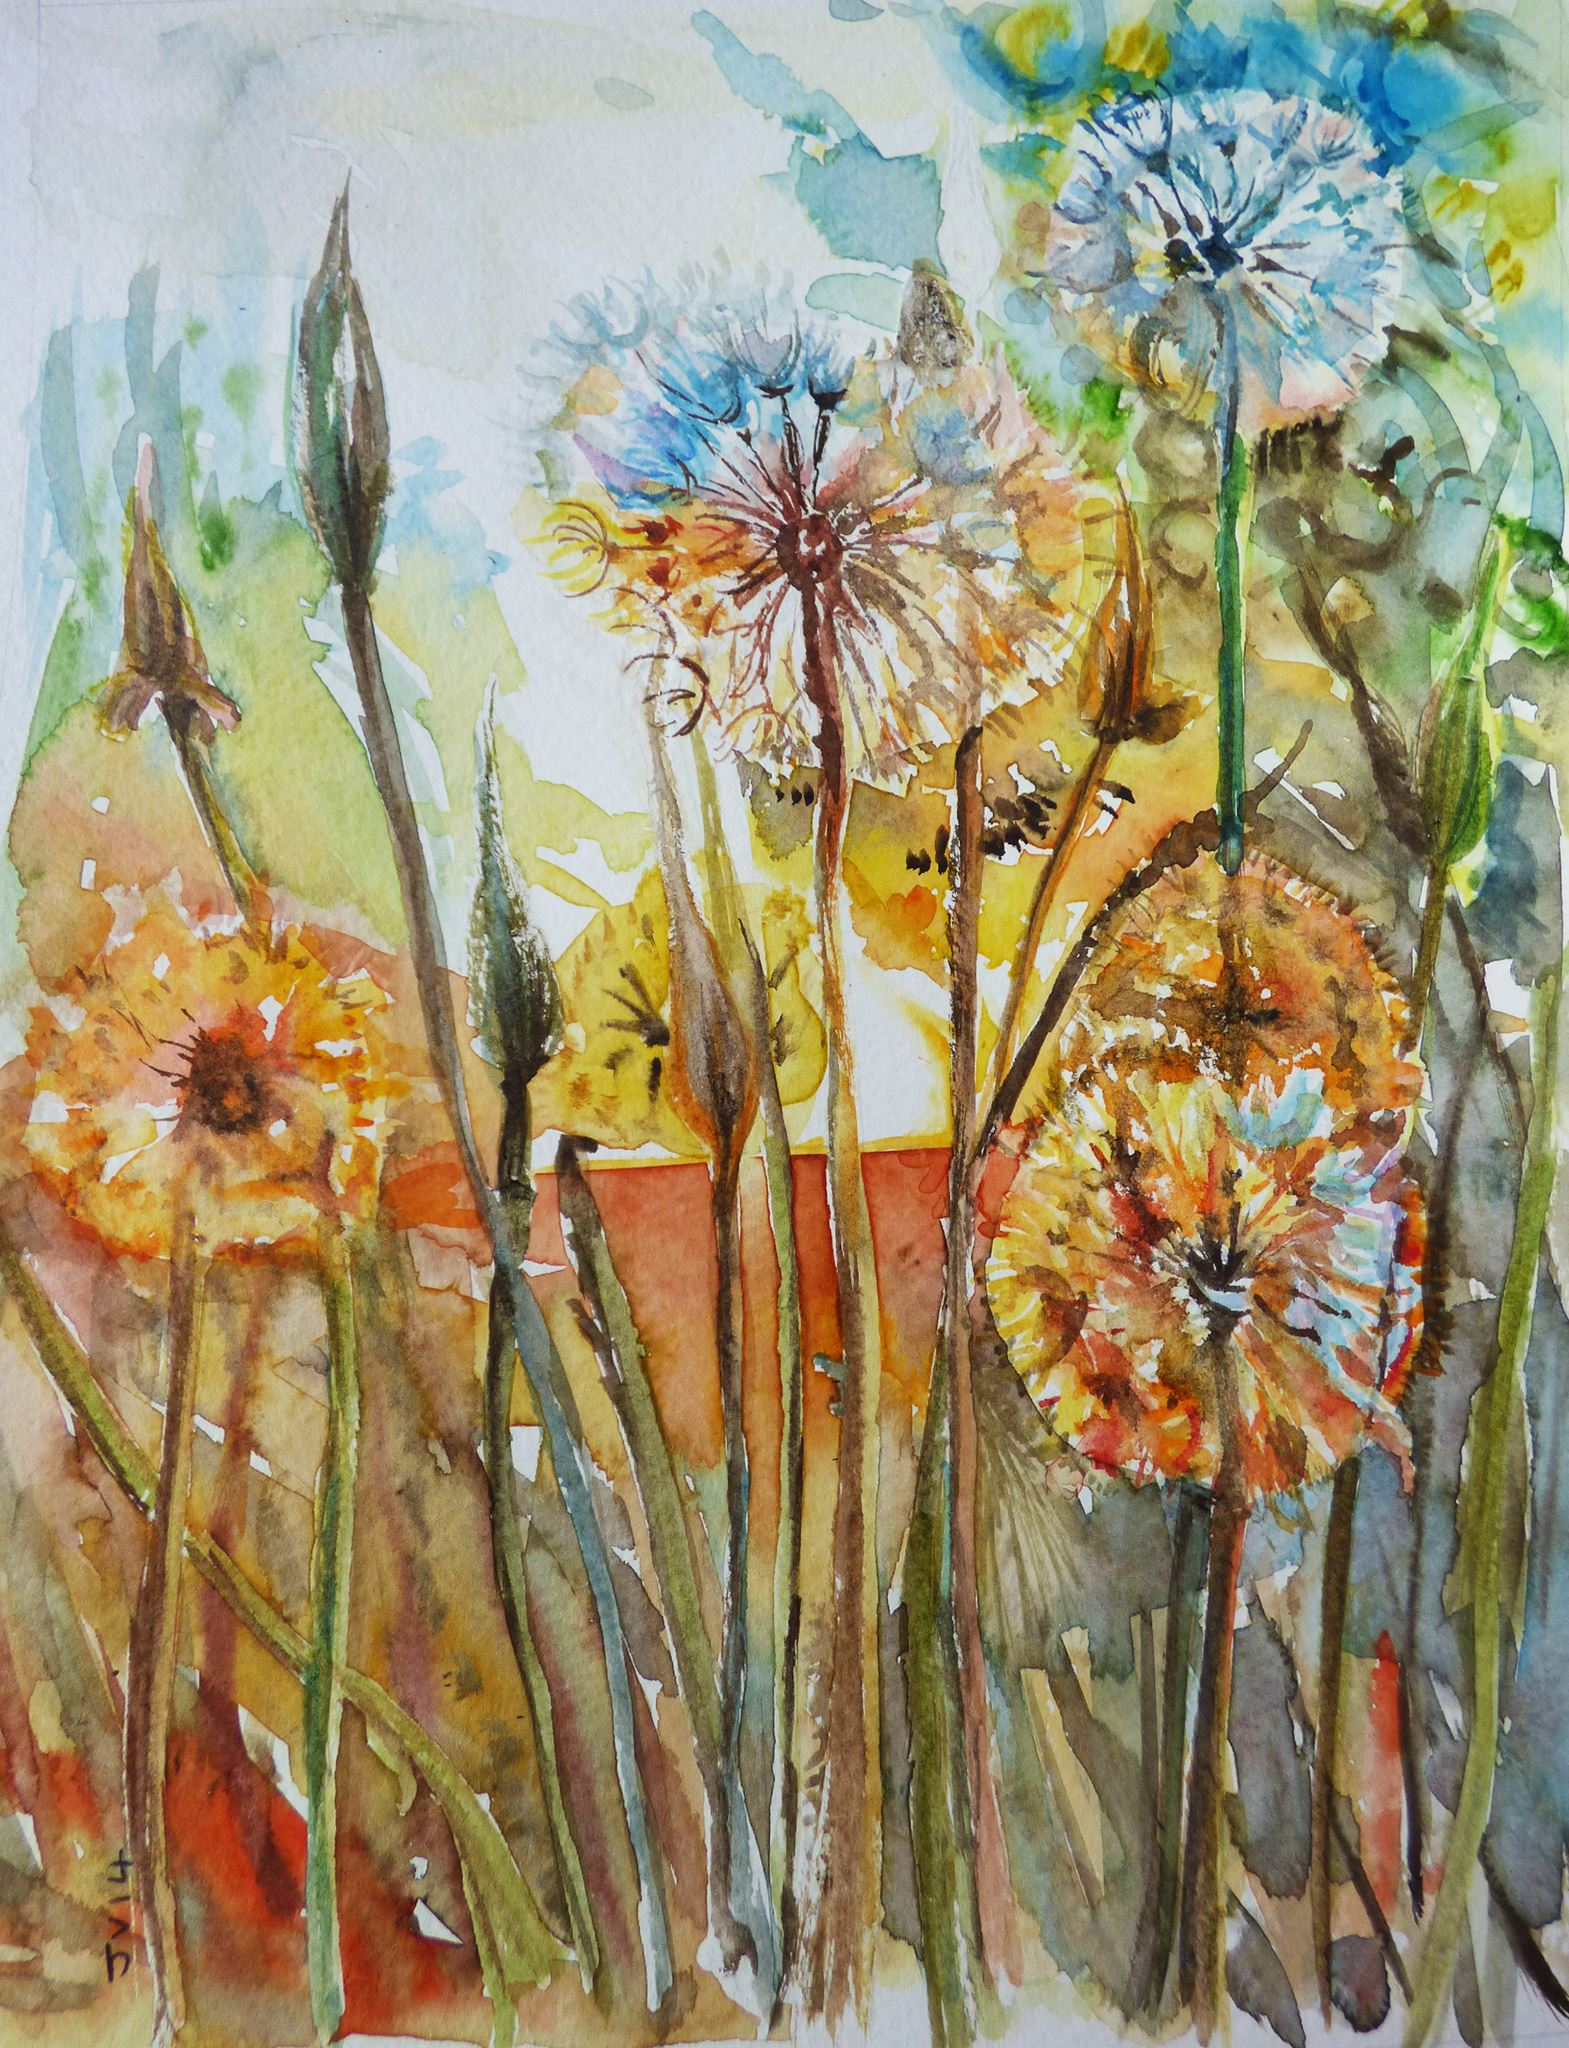 """Dandelion Dawn"" by Jane Vellender"